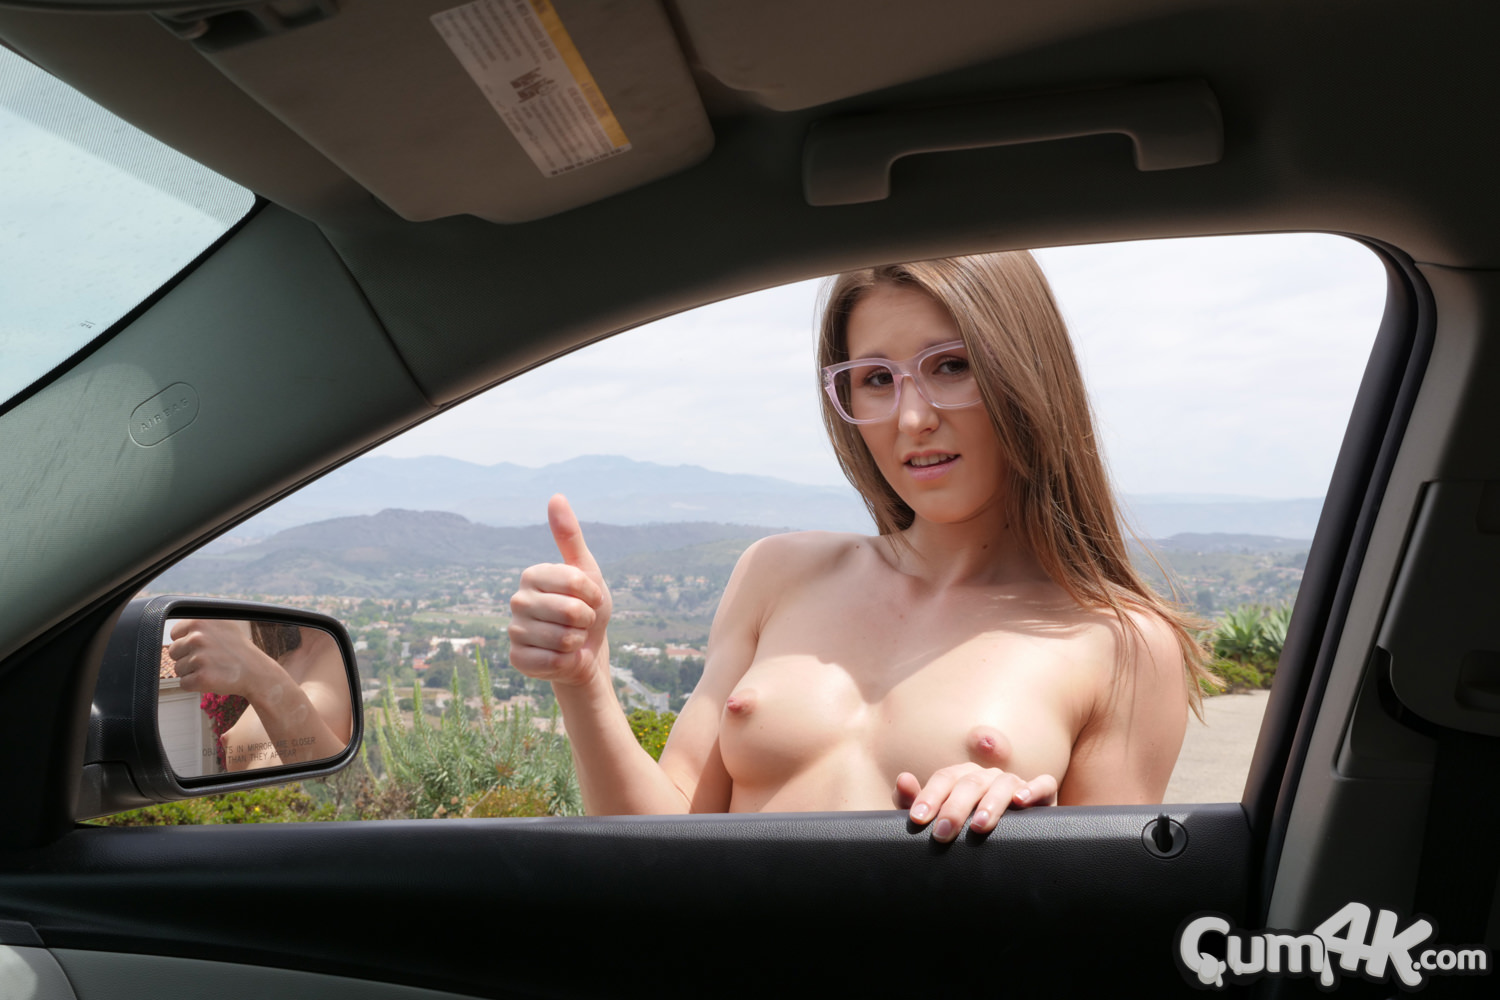 a plain load of white joy for geeky hitchiker paige owens from cum4k #2